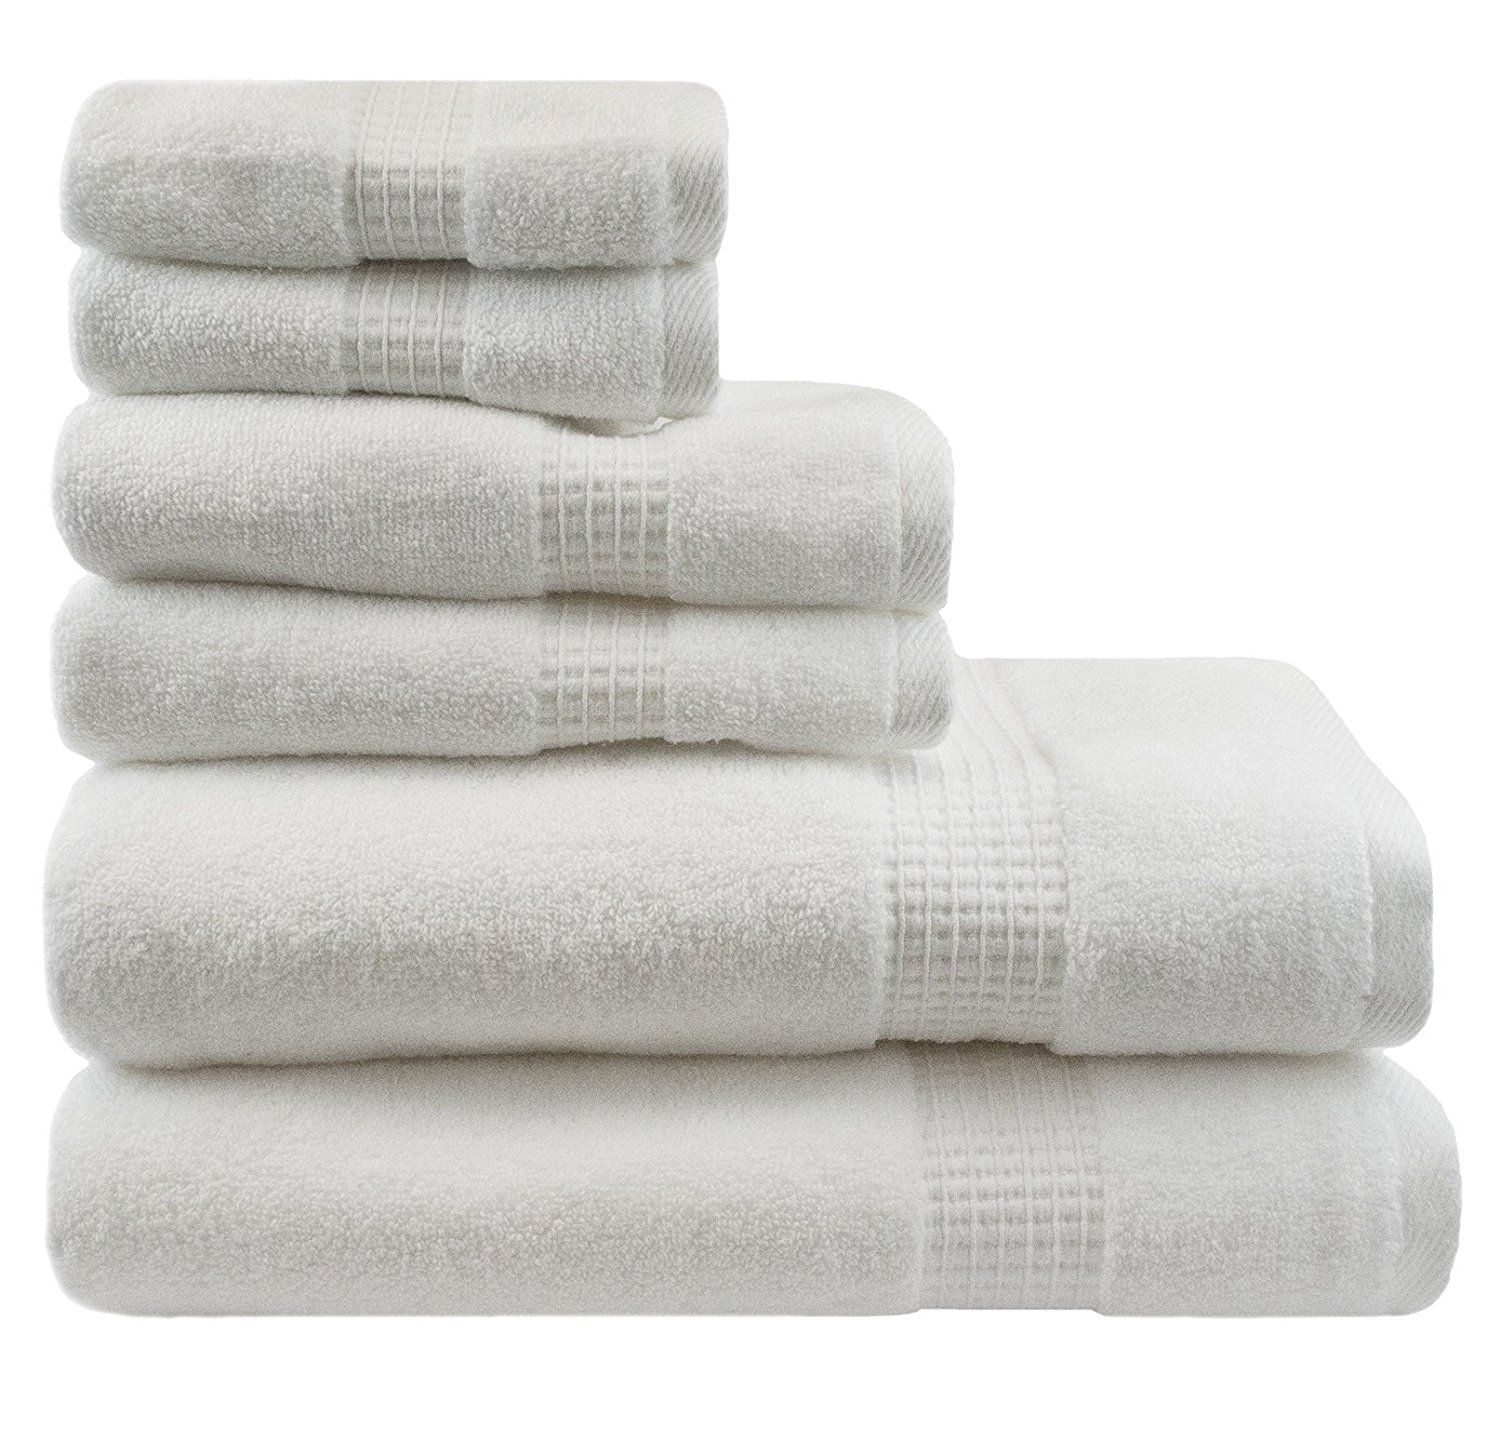 6 Piece White Solid Color Towel Set With 30 X 54 Inches Bath Towels, Light White Textured Check Border Stripe Plush Low Twist Loop Terry Absorbent Luxurious Soft Elegant Modern Towels, Cotton